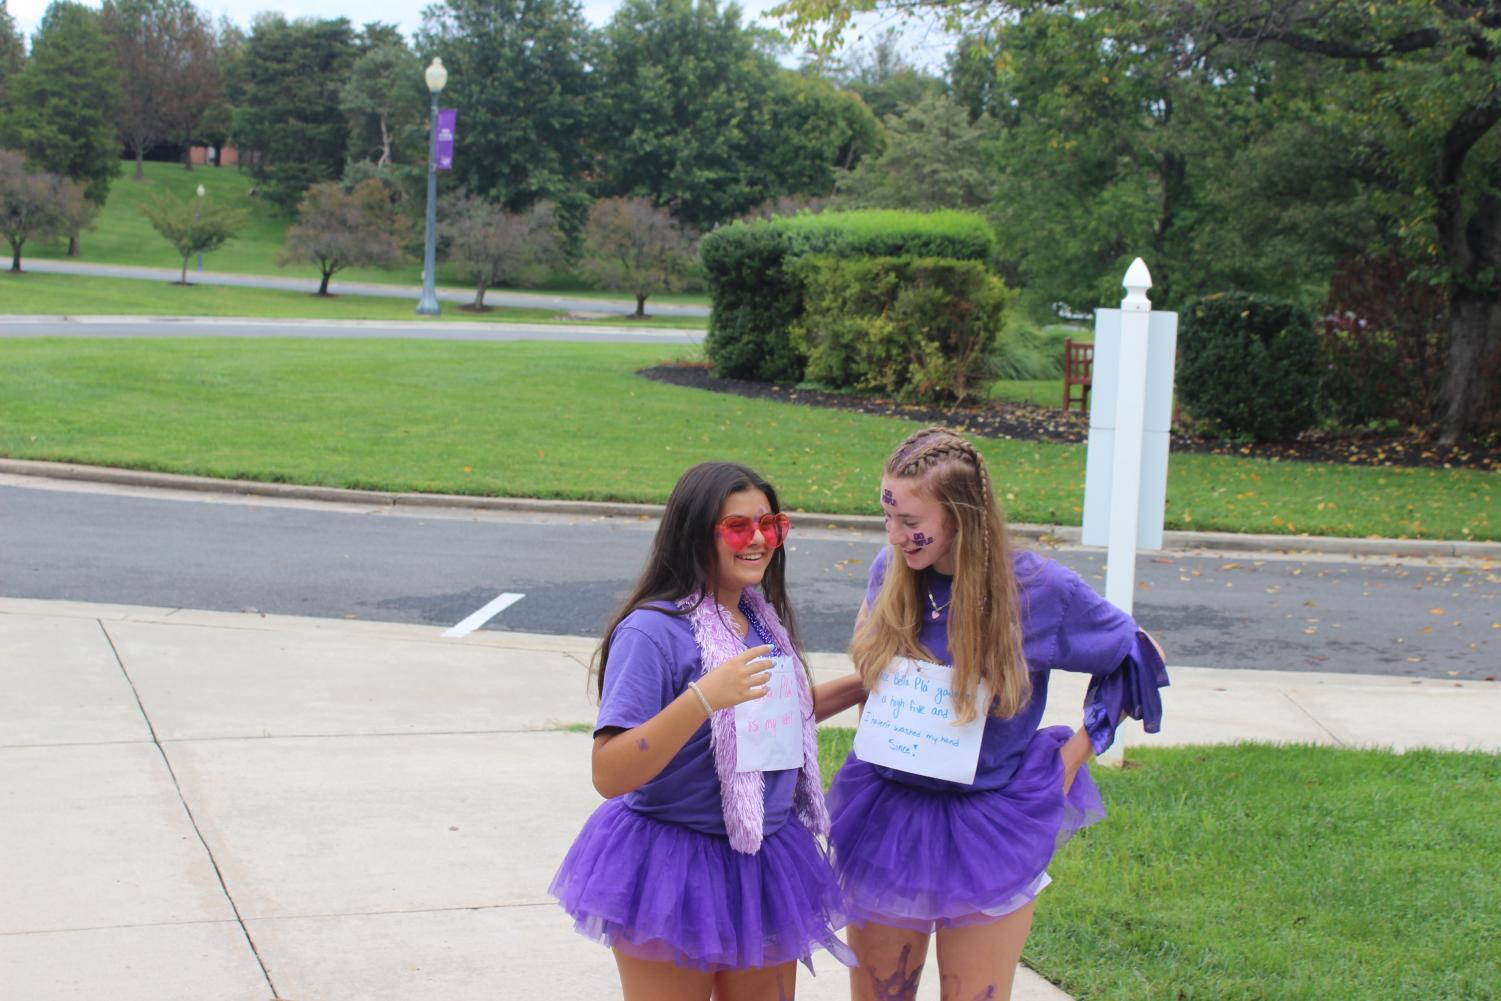 Alexia Sandonas and Anna Giacomini posing for a photo in their purple outfits for Holy Cross Day.